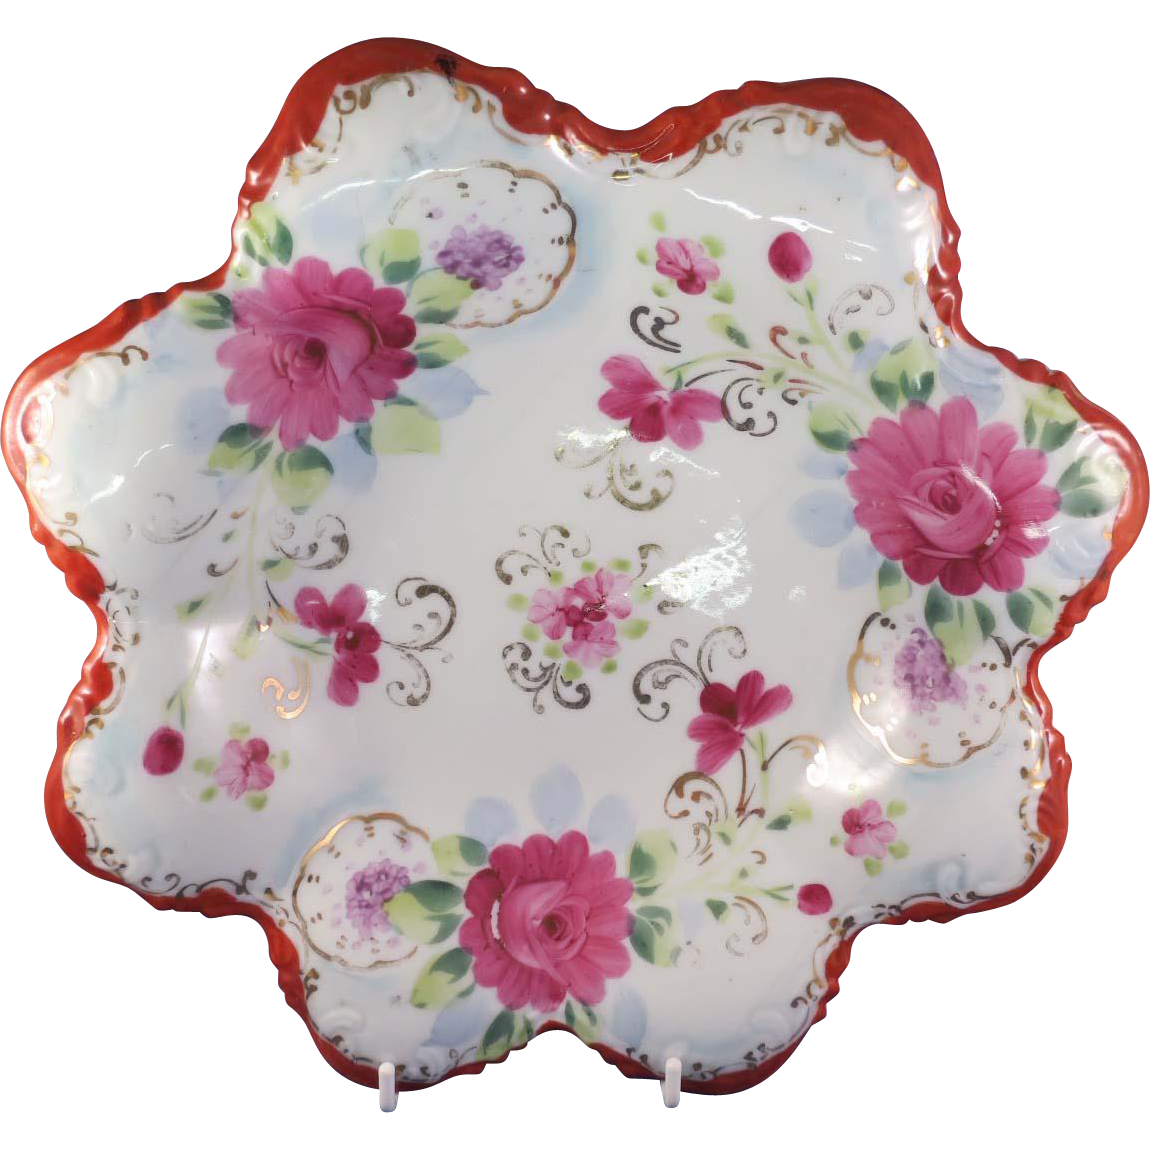 Vintage Bowl with Hand-Painted Flowers